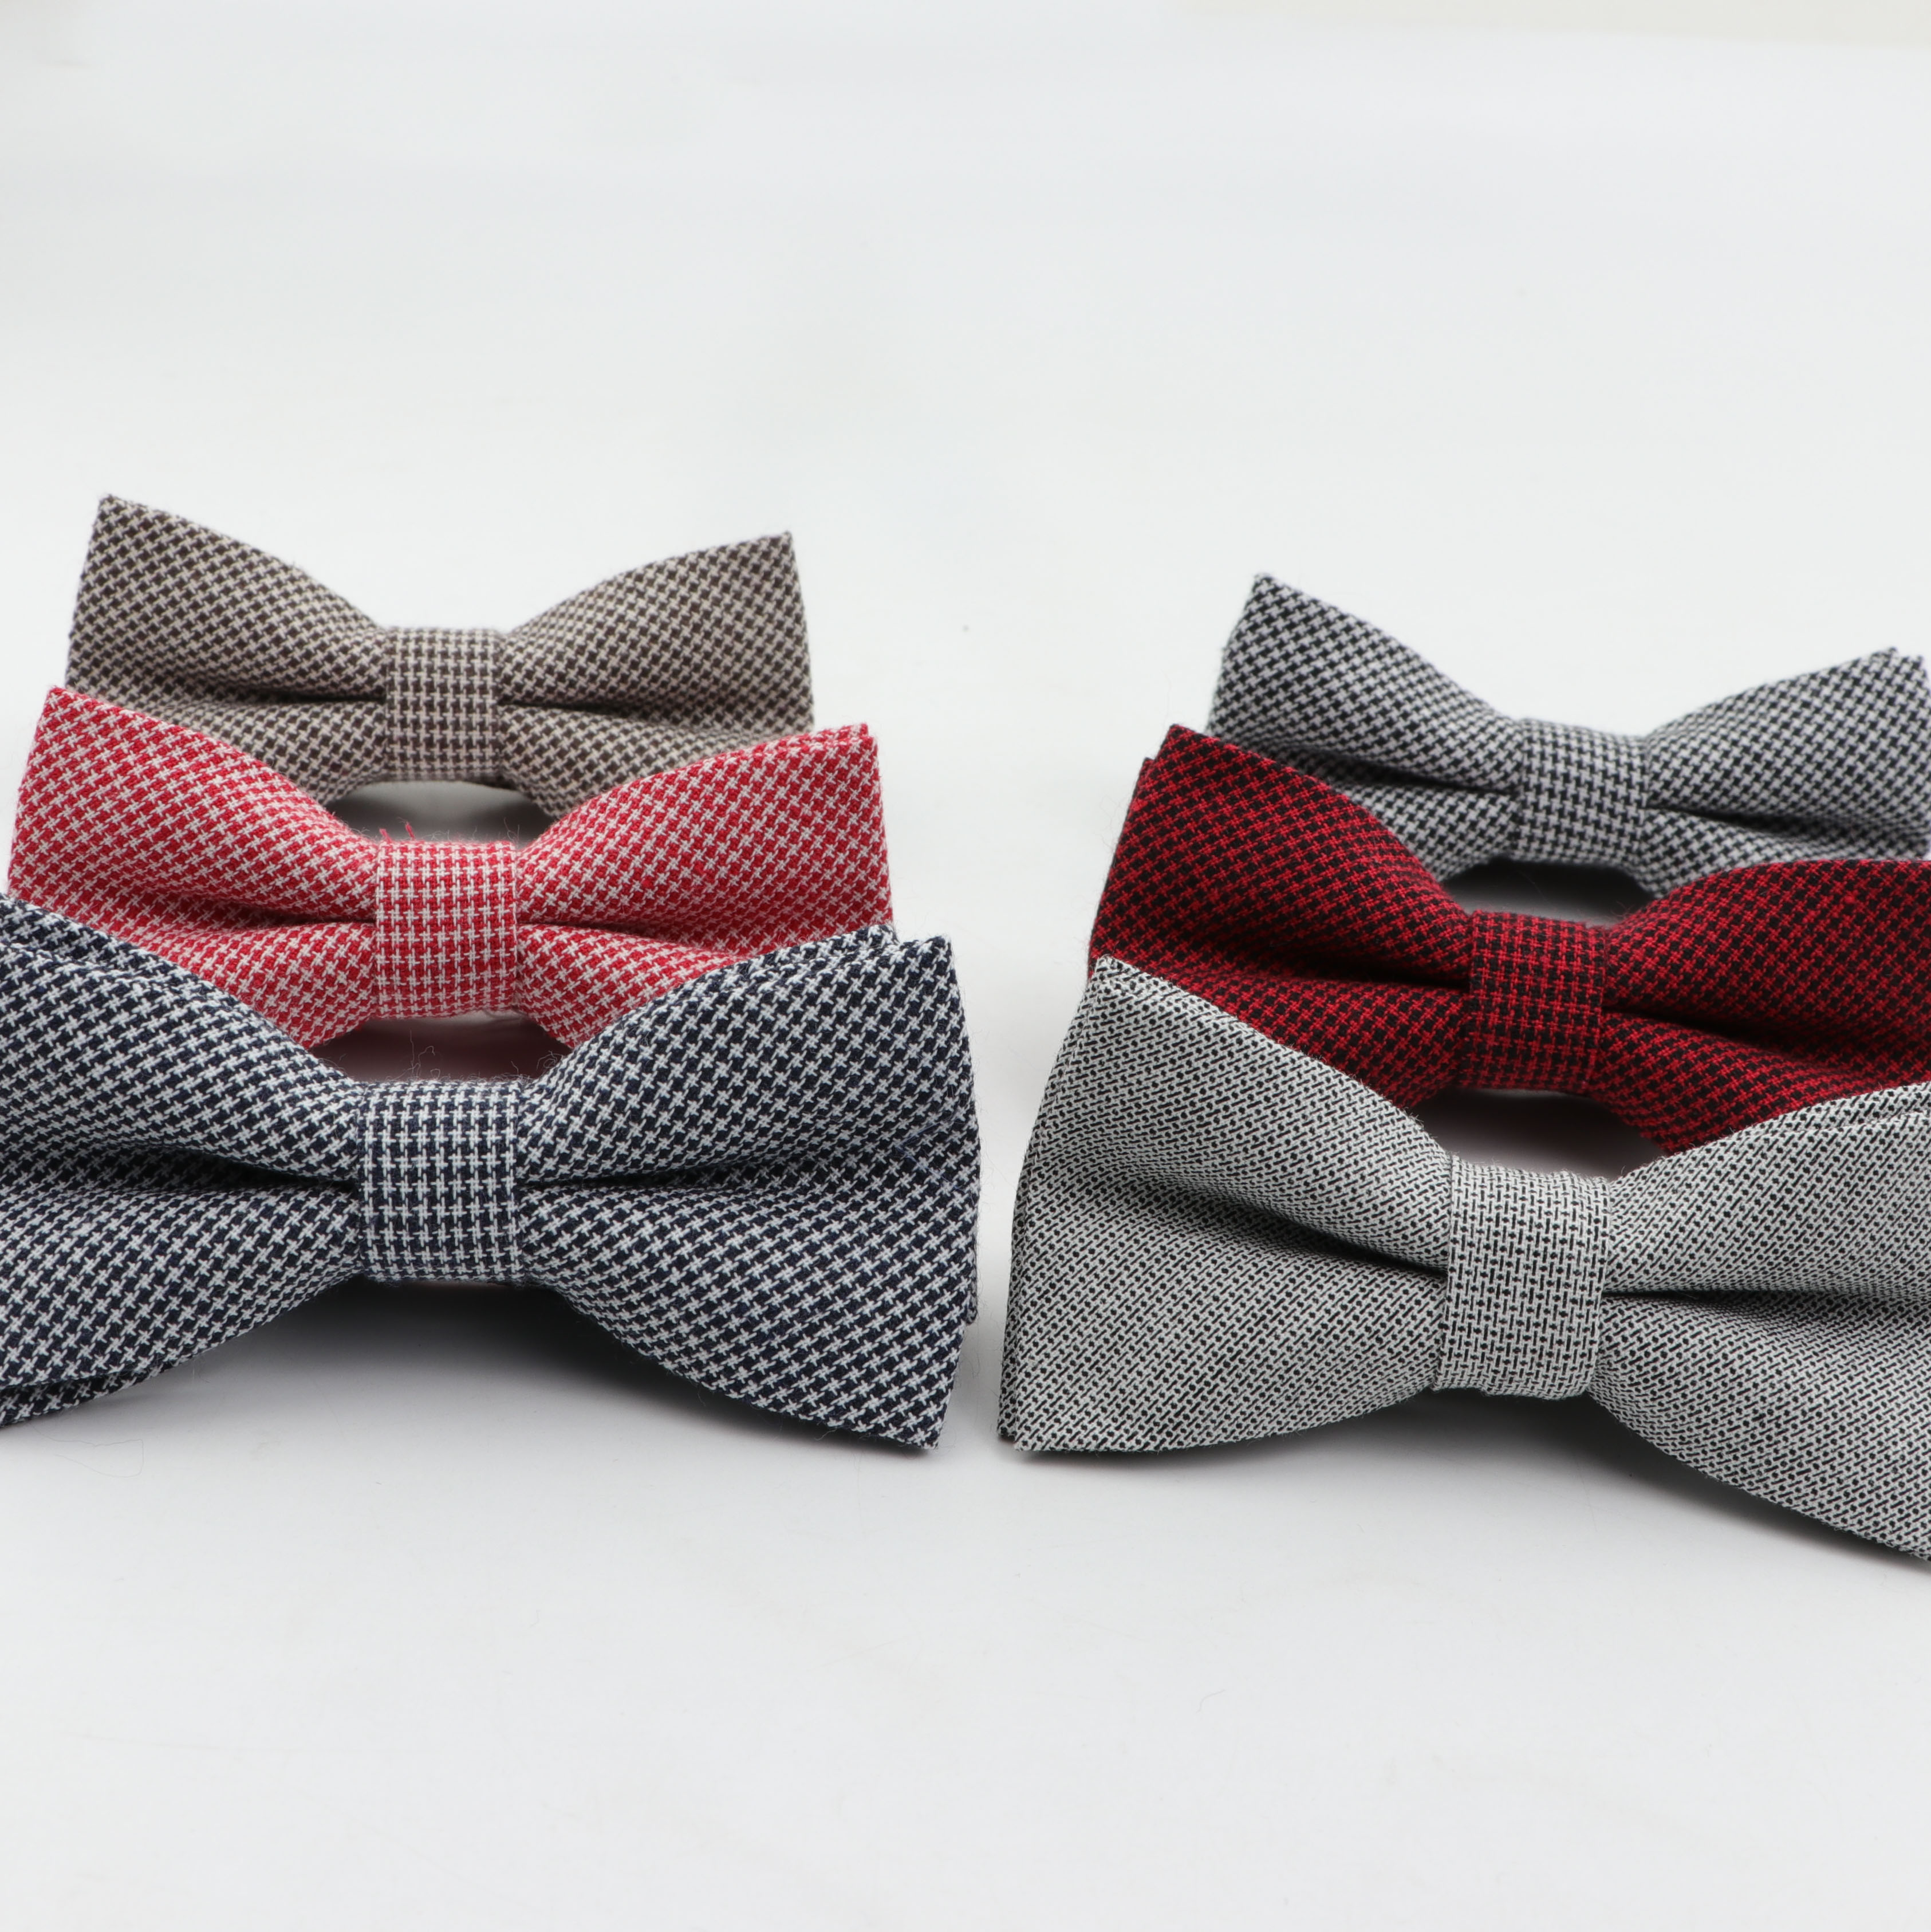 Children Striped Color Bowtie Formal Cotton Bow Tie Kid Classical Solid Bowties Colorful Butterfly Wedding Party Pet Tuxedo Ties